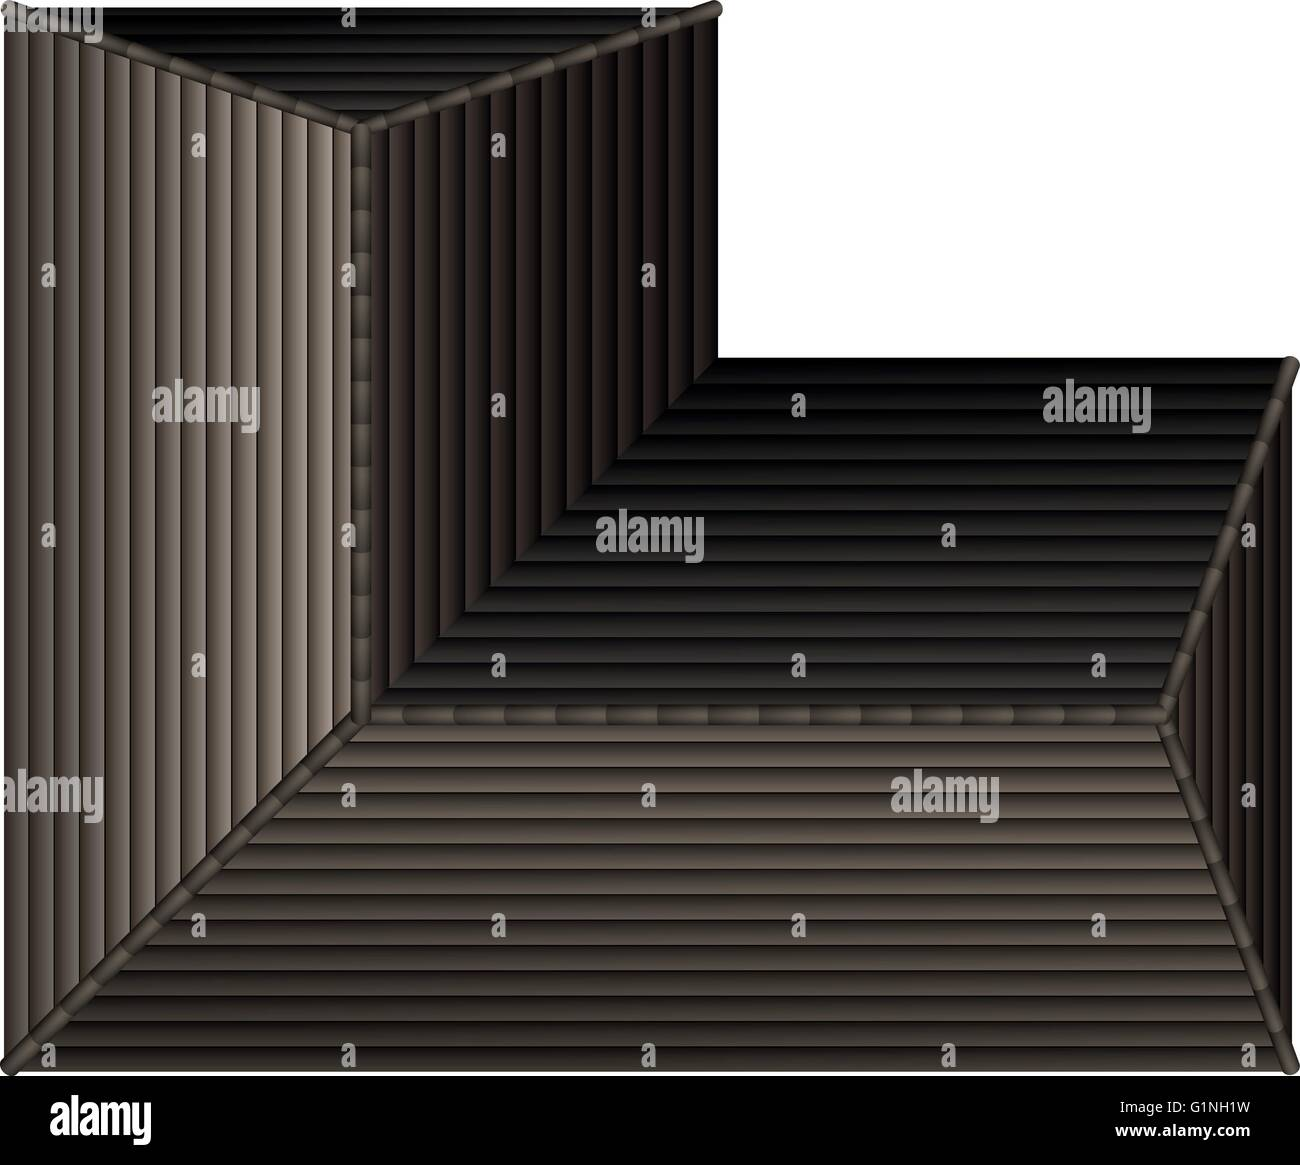 Top View Of Gray Rooftop Illustration Stock Vector Art